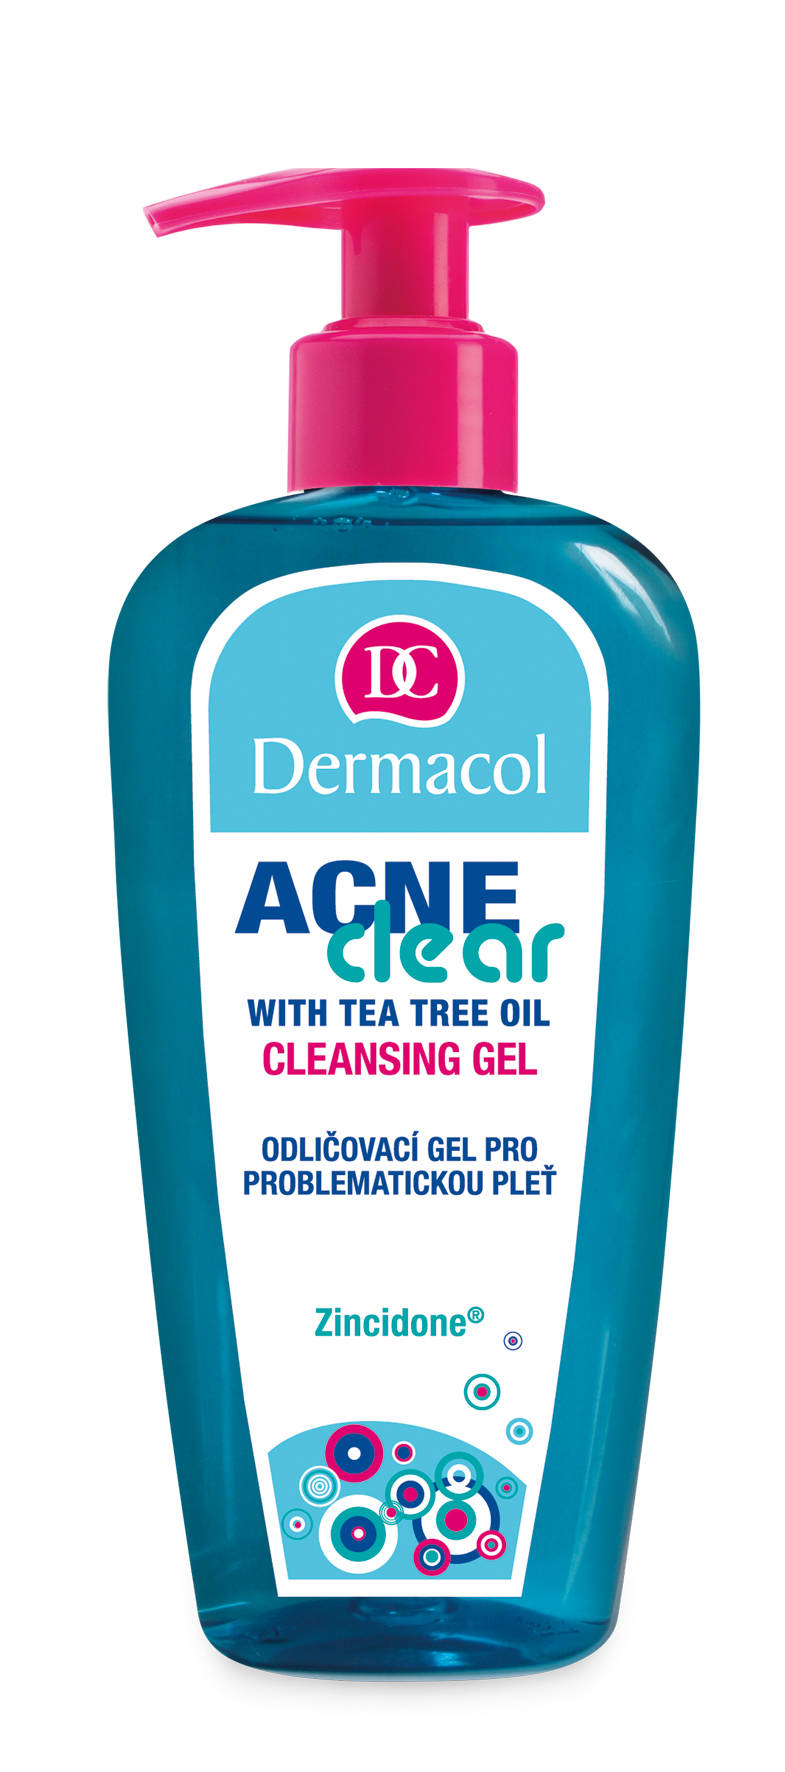 AcneClear Make-up Removal & Cleansing gel 200 ml